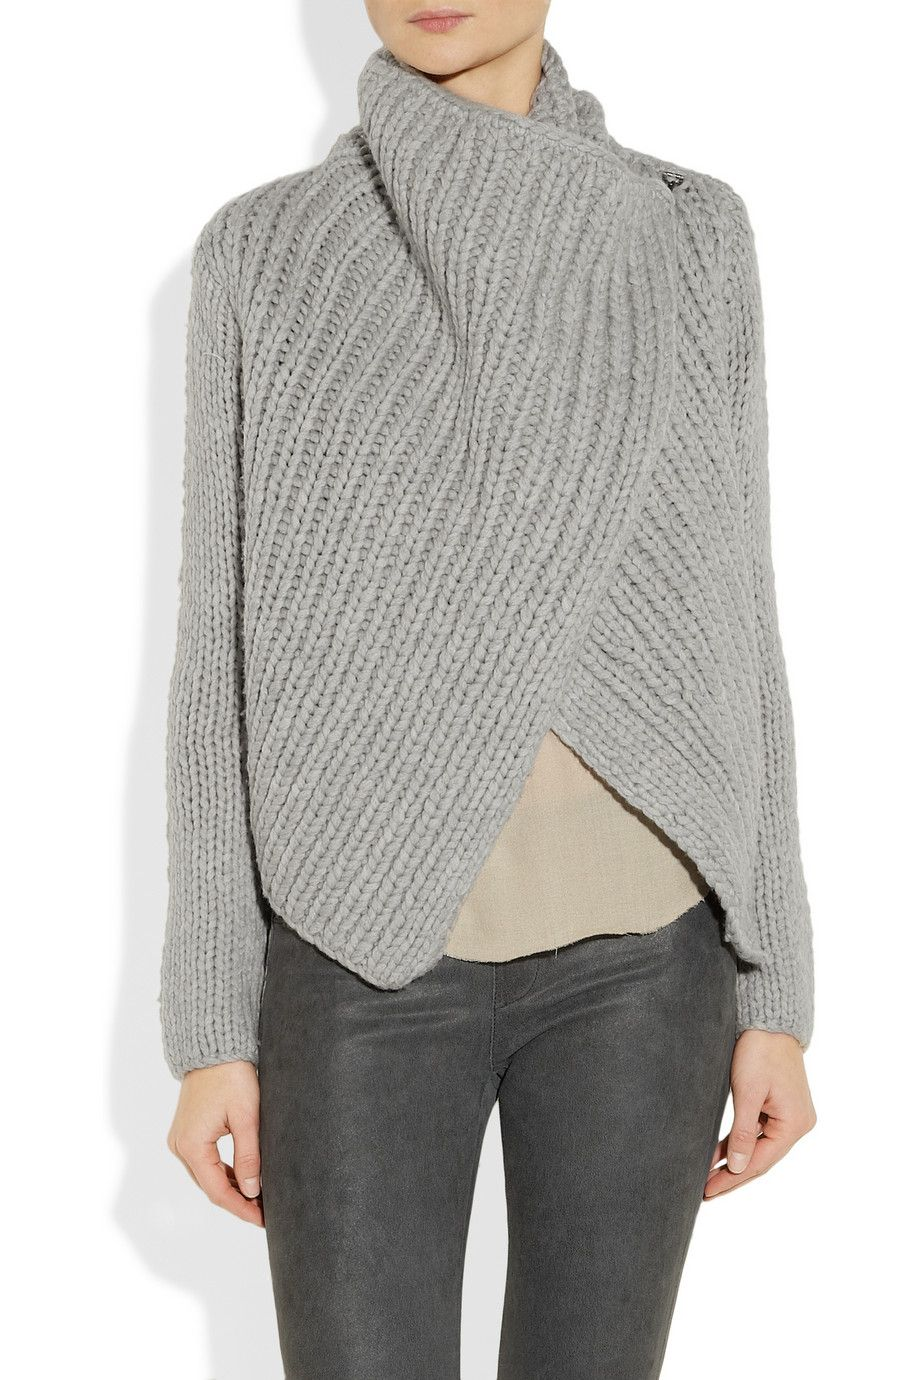 Knitting Cardigan Design : Helmut lang bulky rib knit sweater love the easy wrap